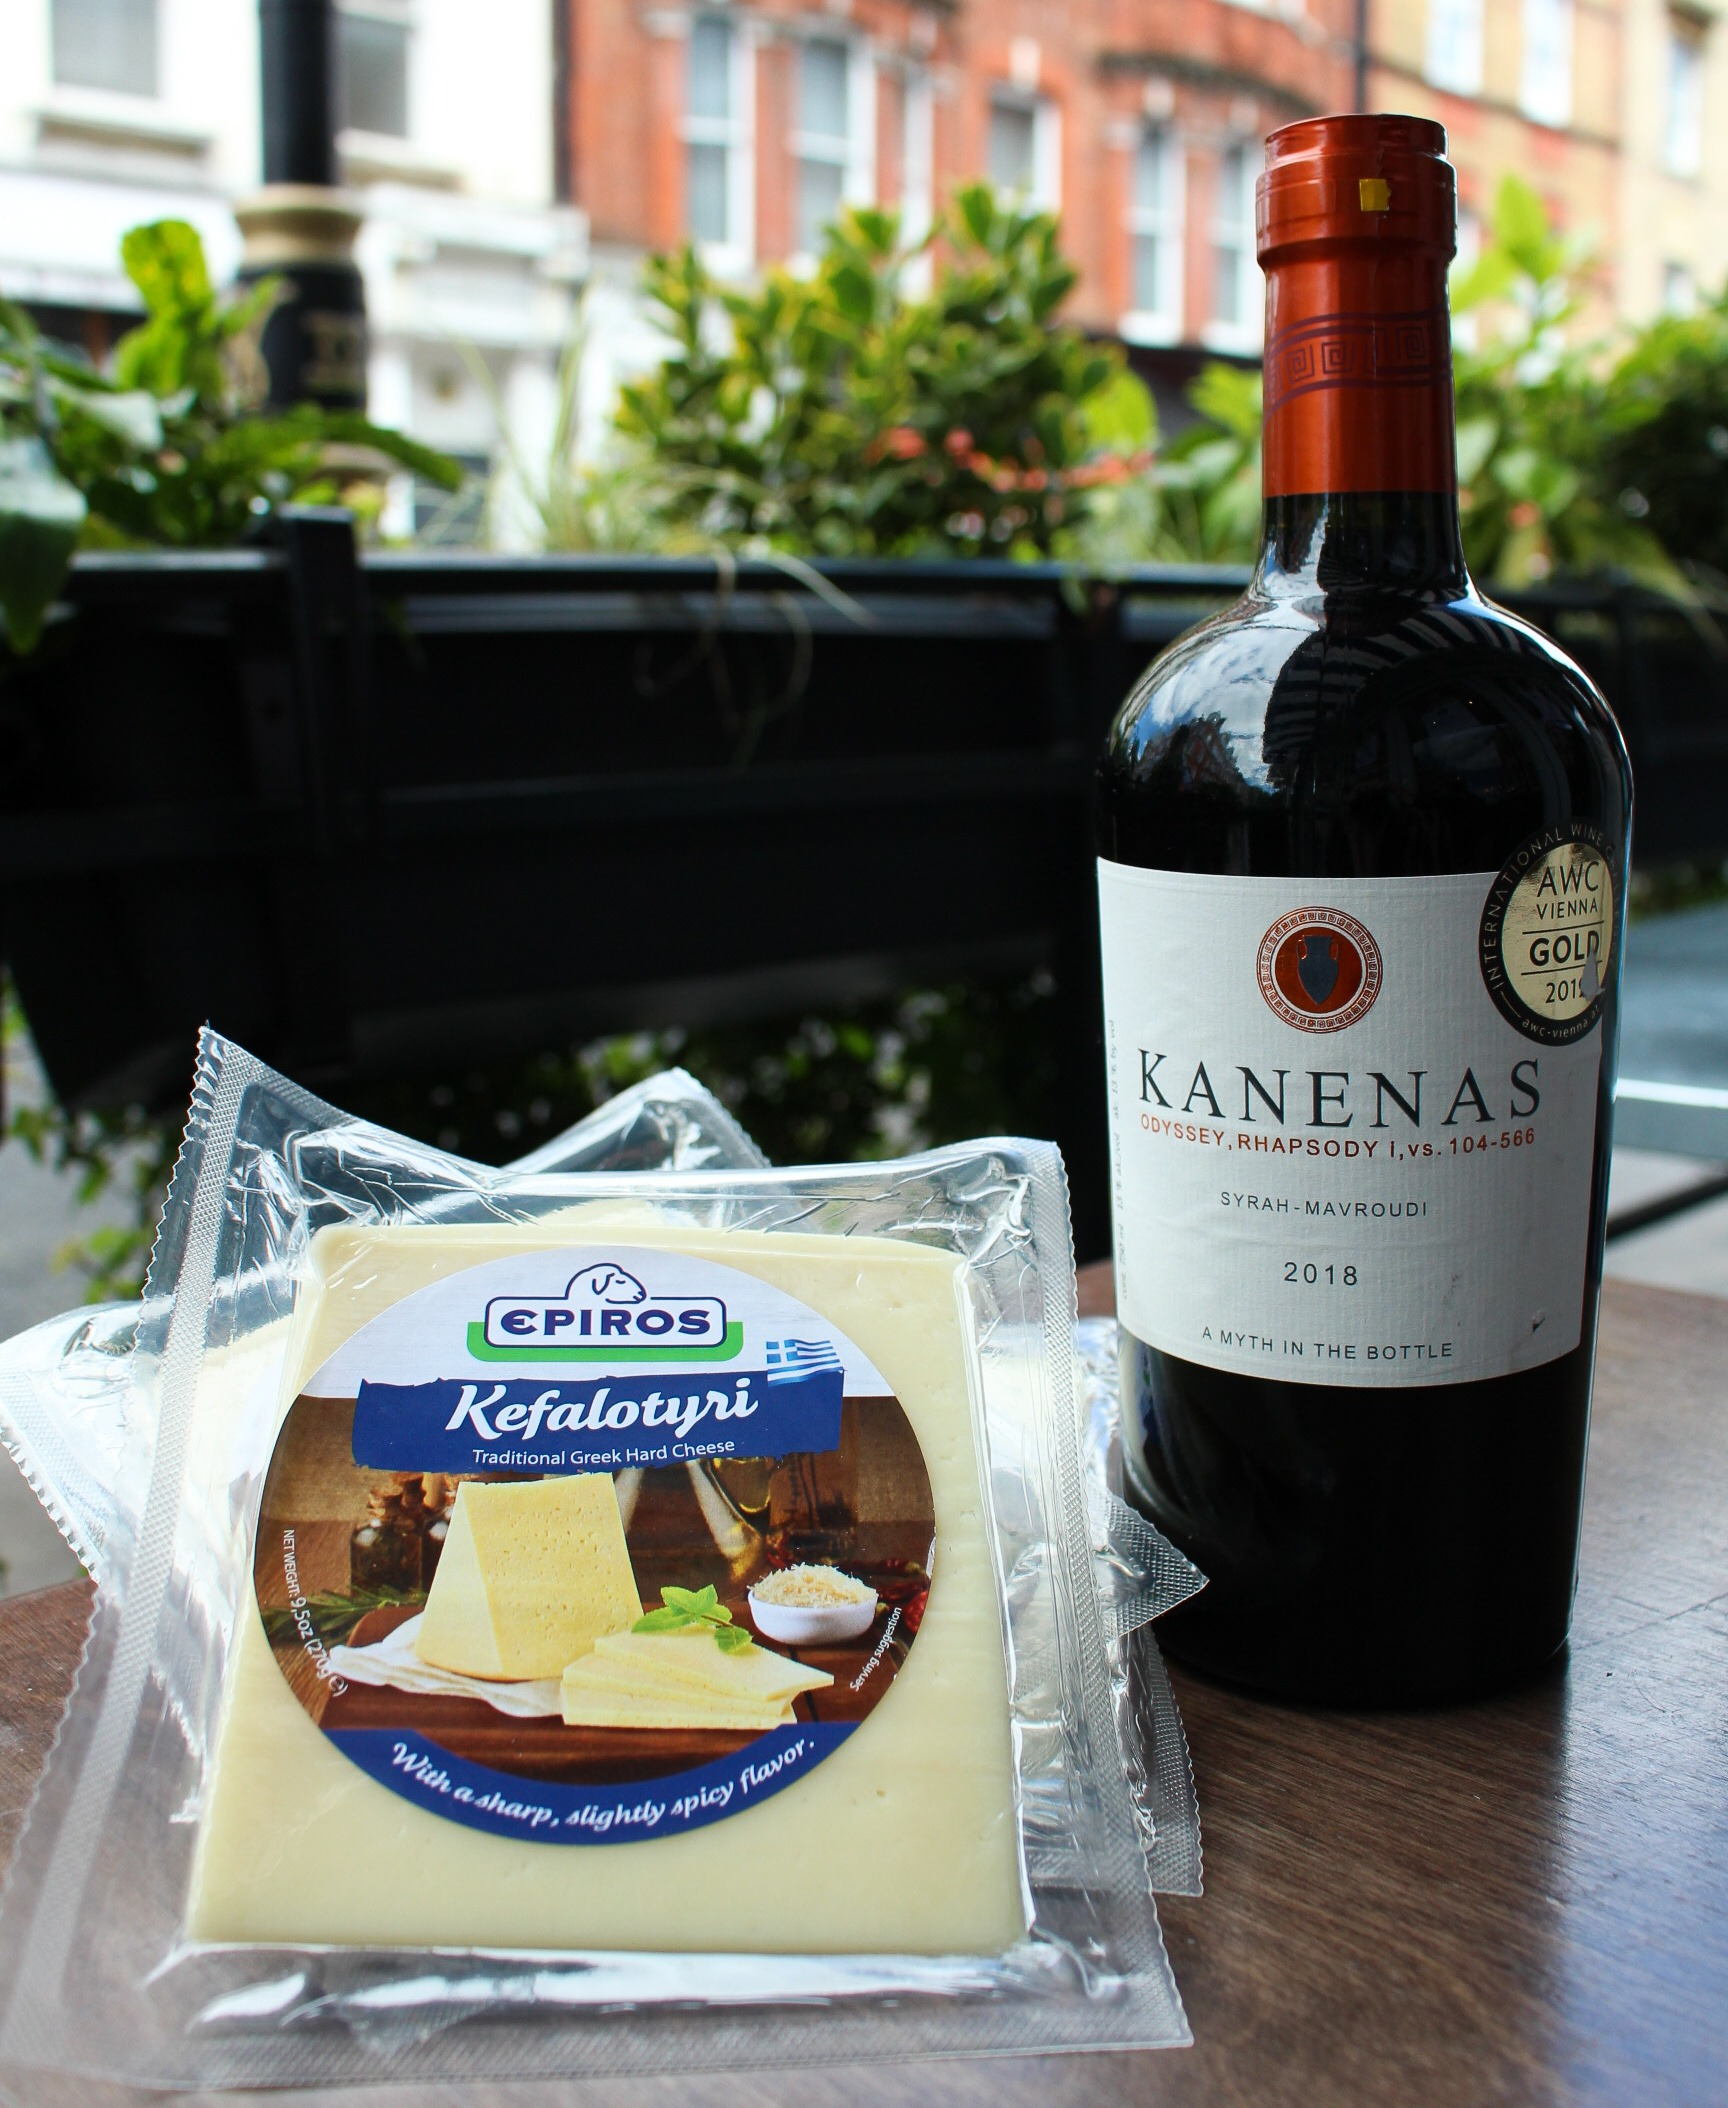 The Real Greek - Wine and Cheese - Kanenas